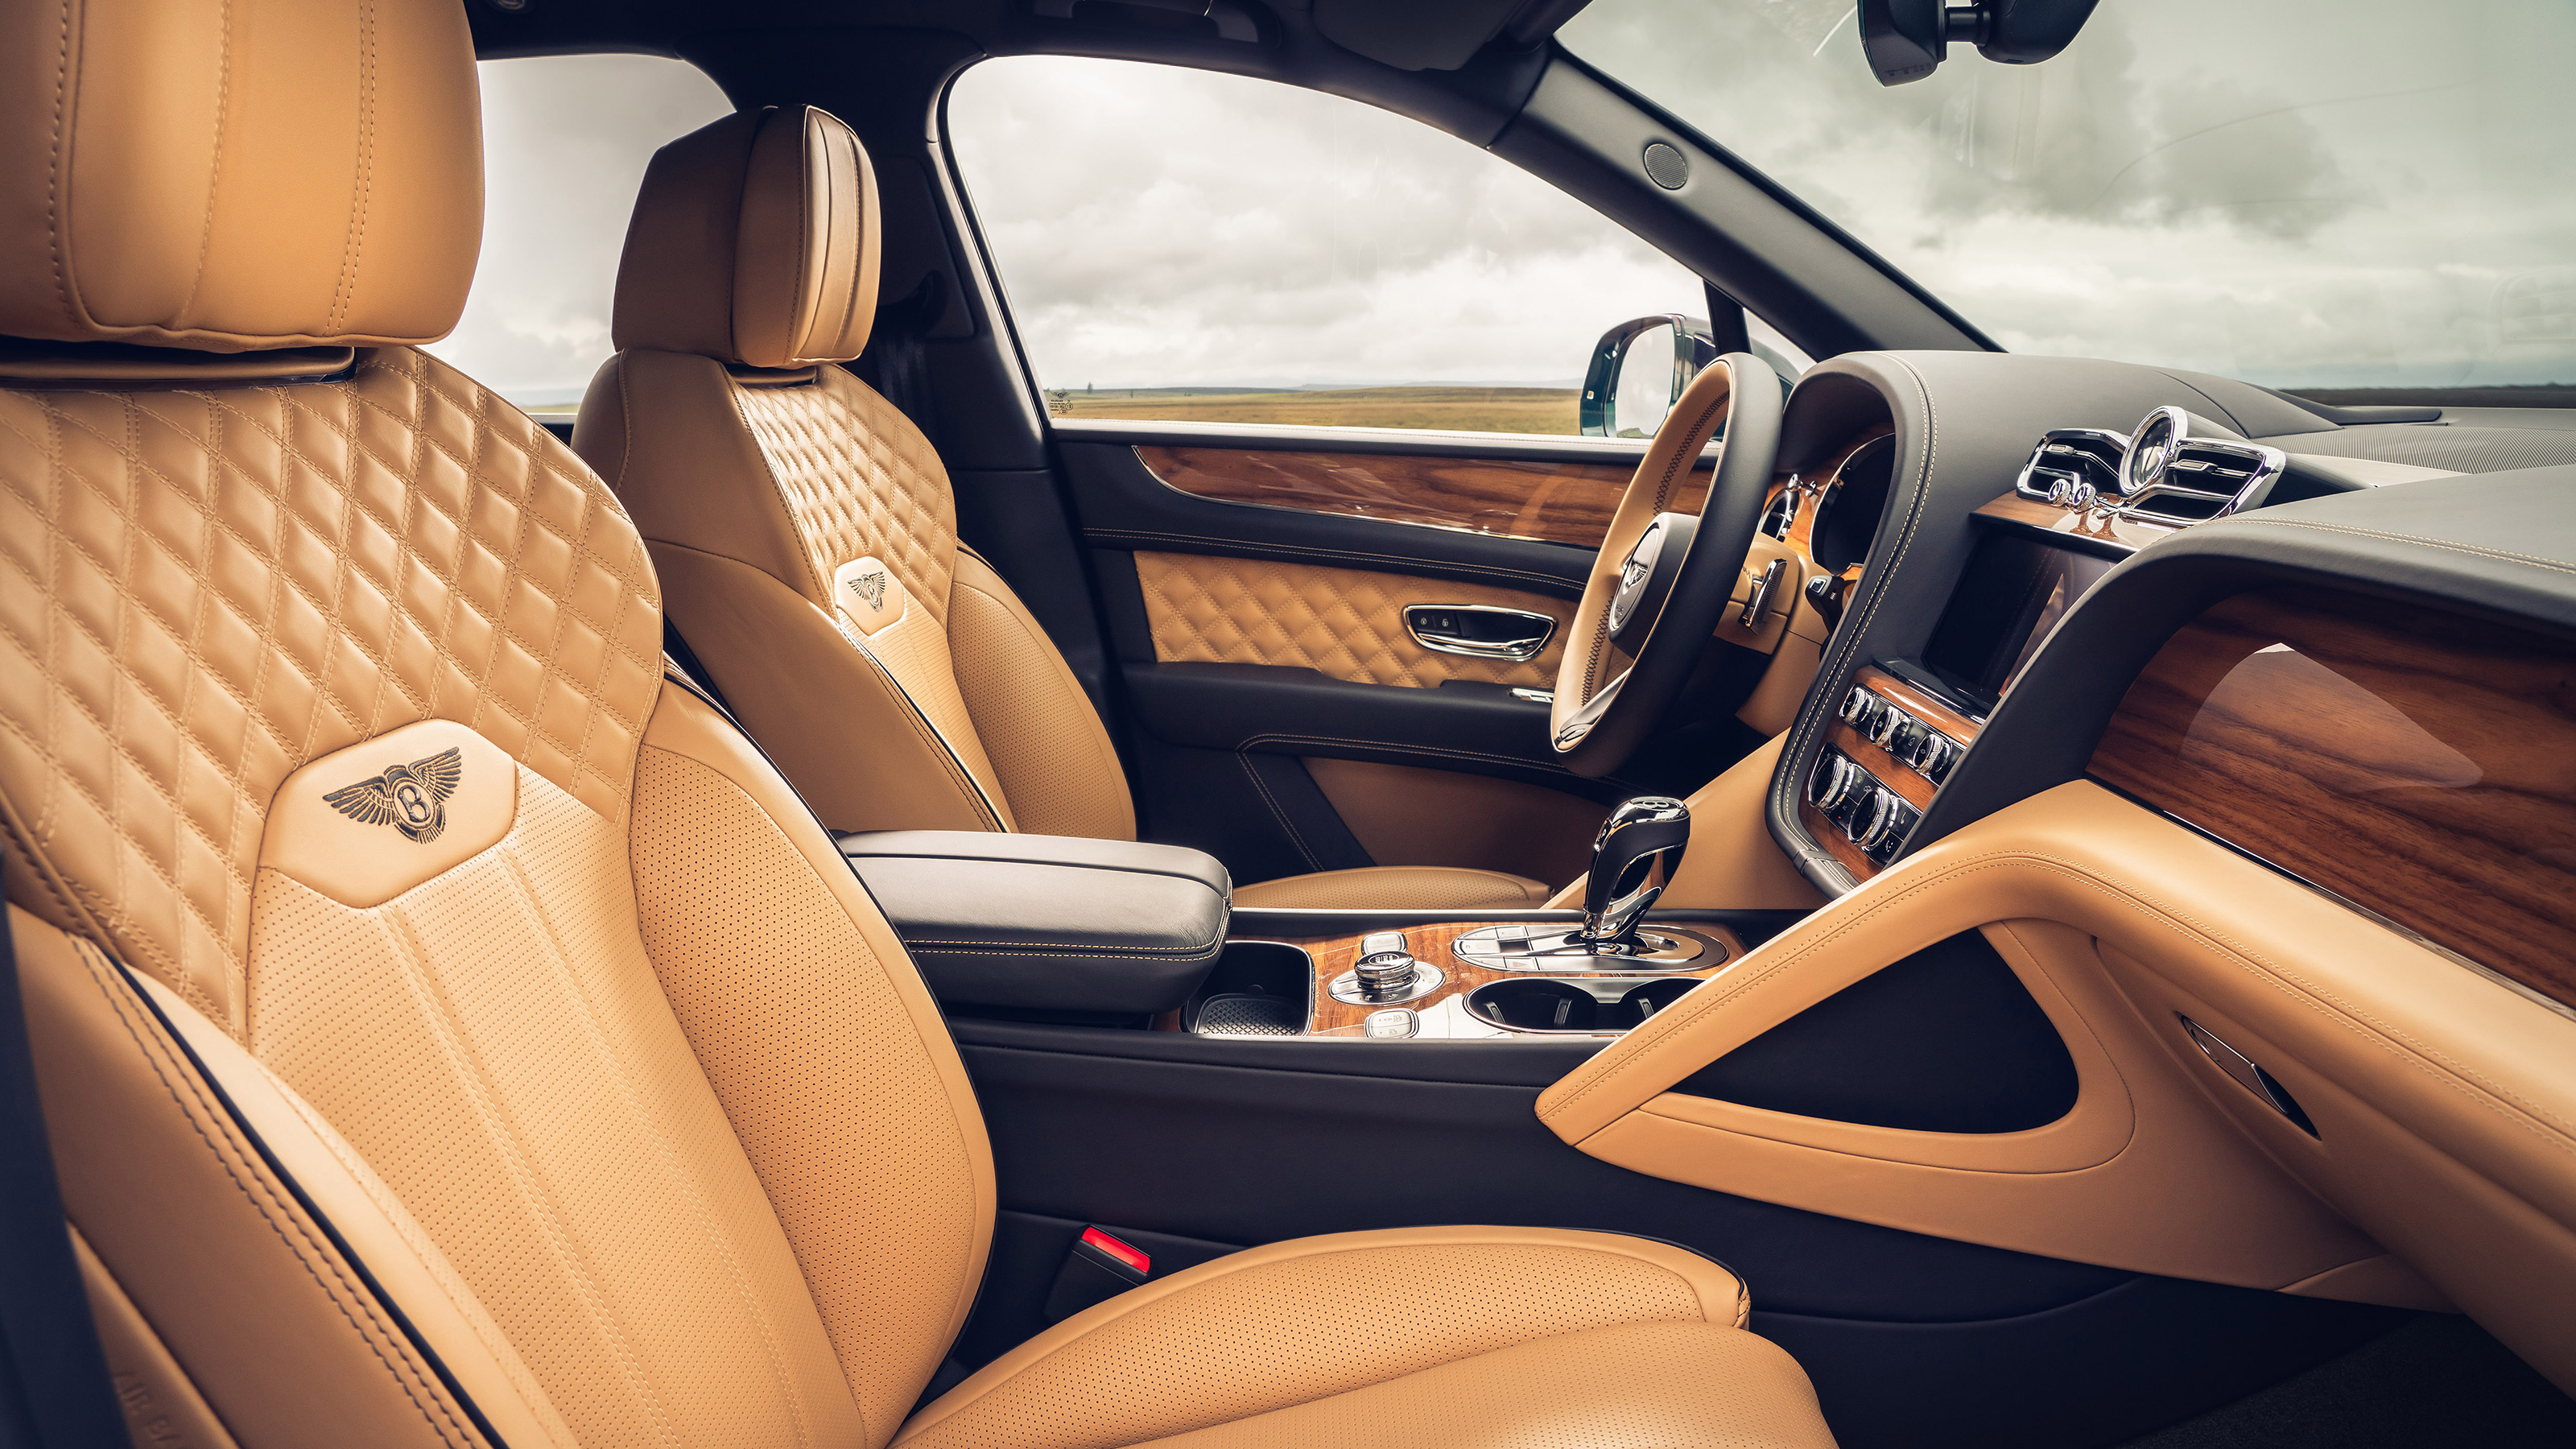 2020 Bentley Bentayga Review Facelifted Luxury Suv Driven Evo